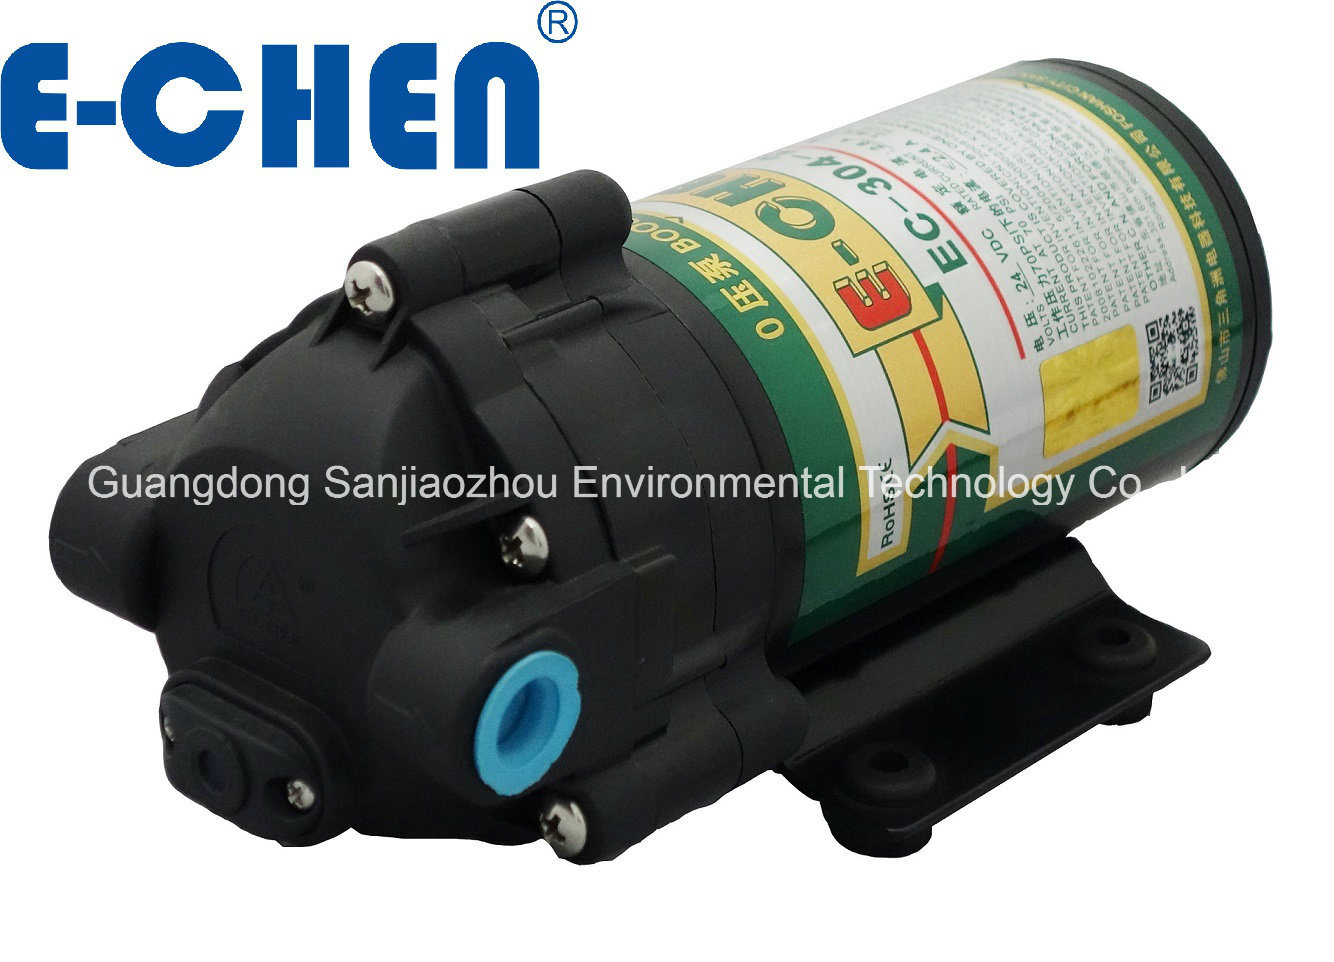 E-Chen 304 Series 100gpd Diaphragm RO Booster Pump - Strong Self Priming, Designed for 0 Inlet Pressure